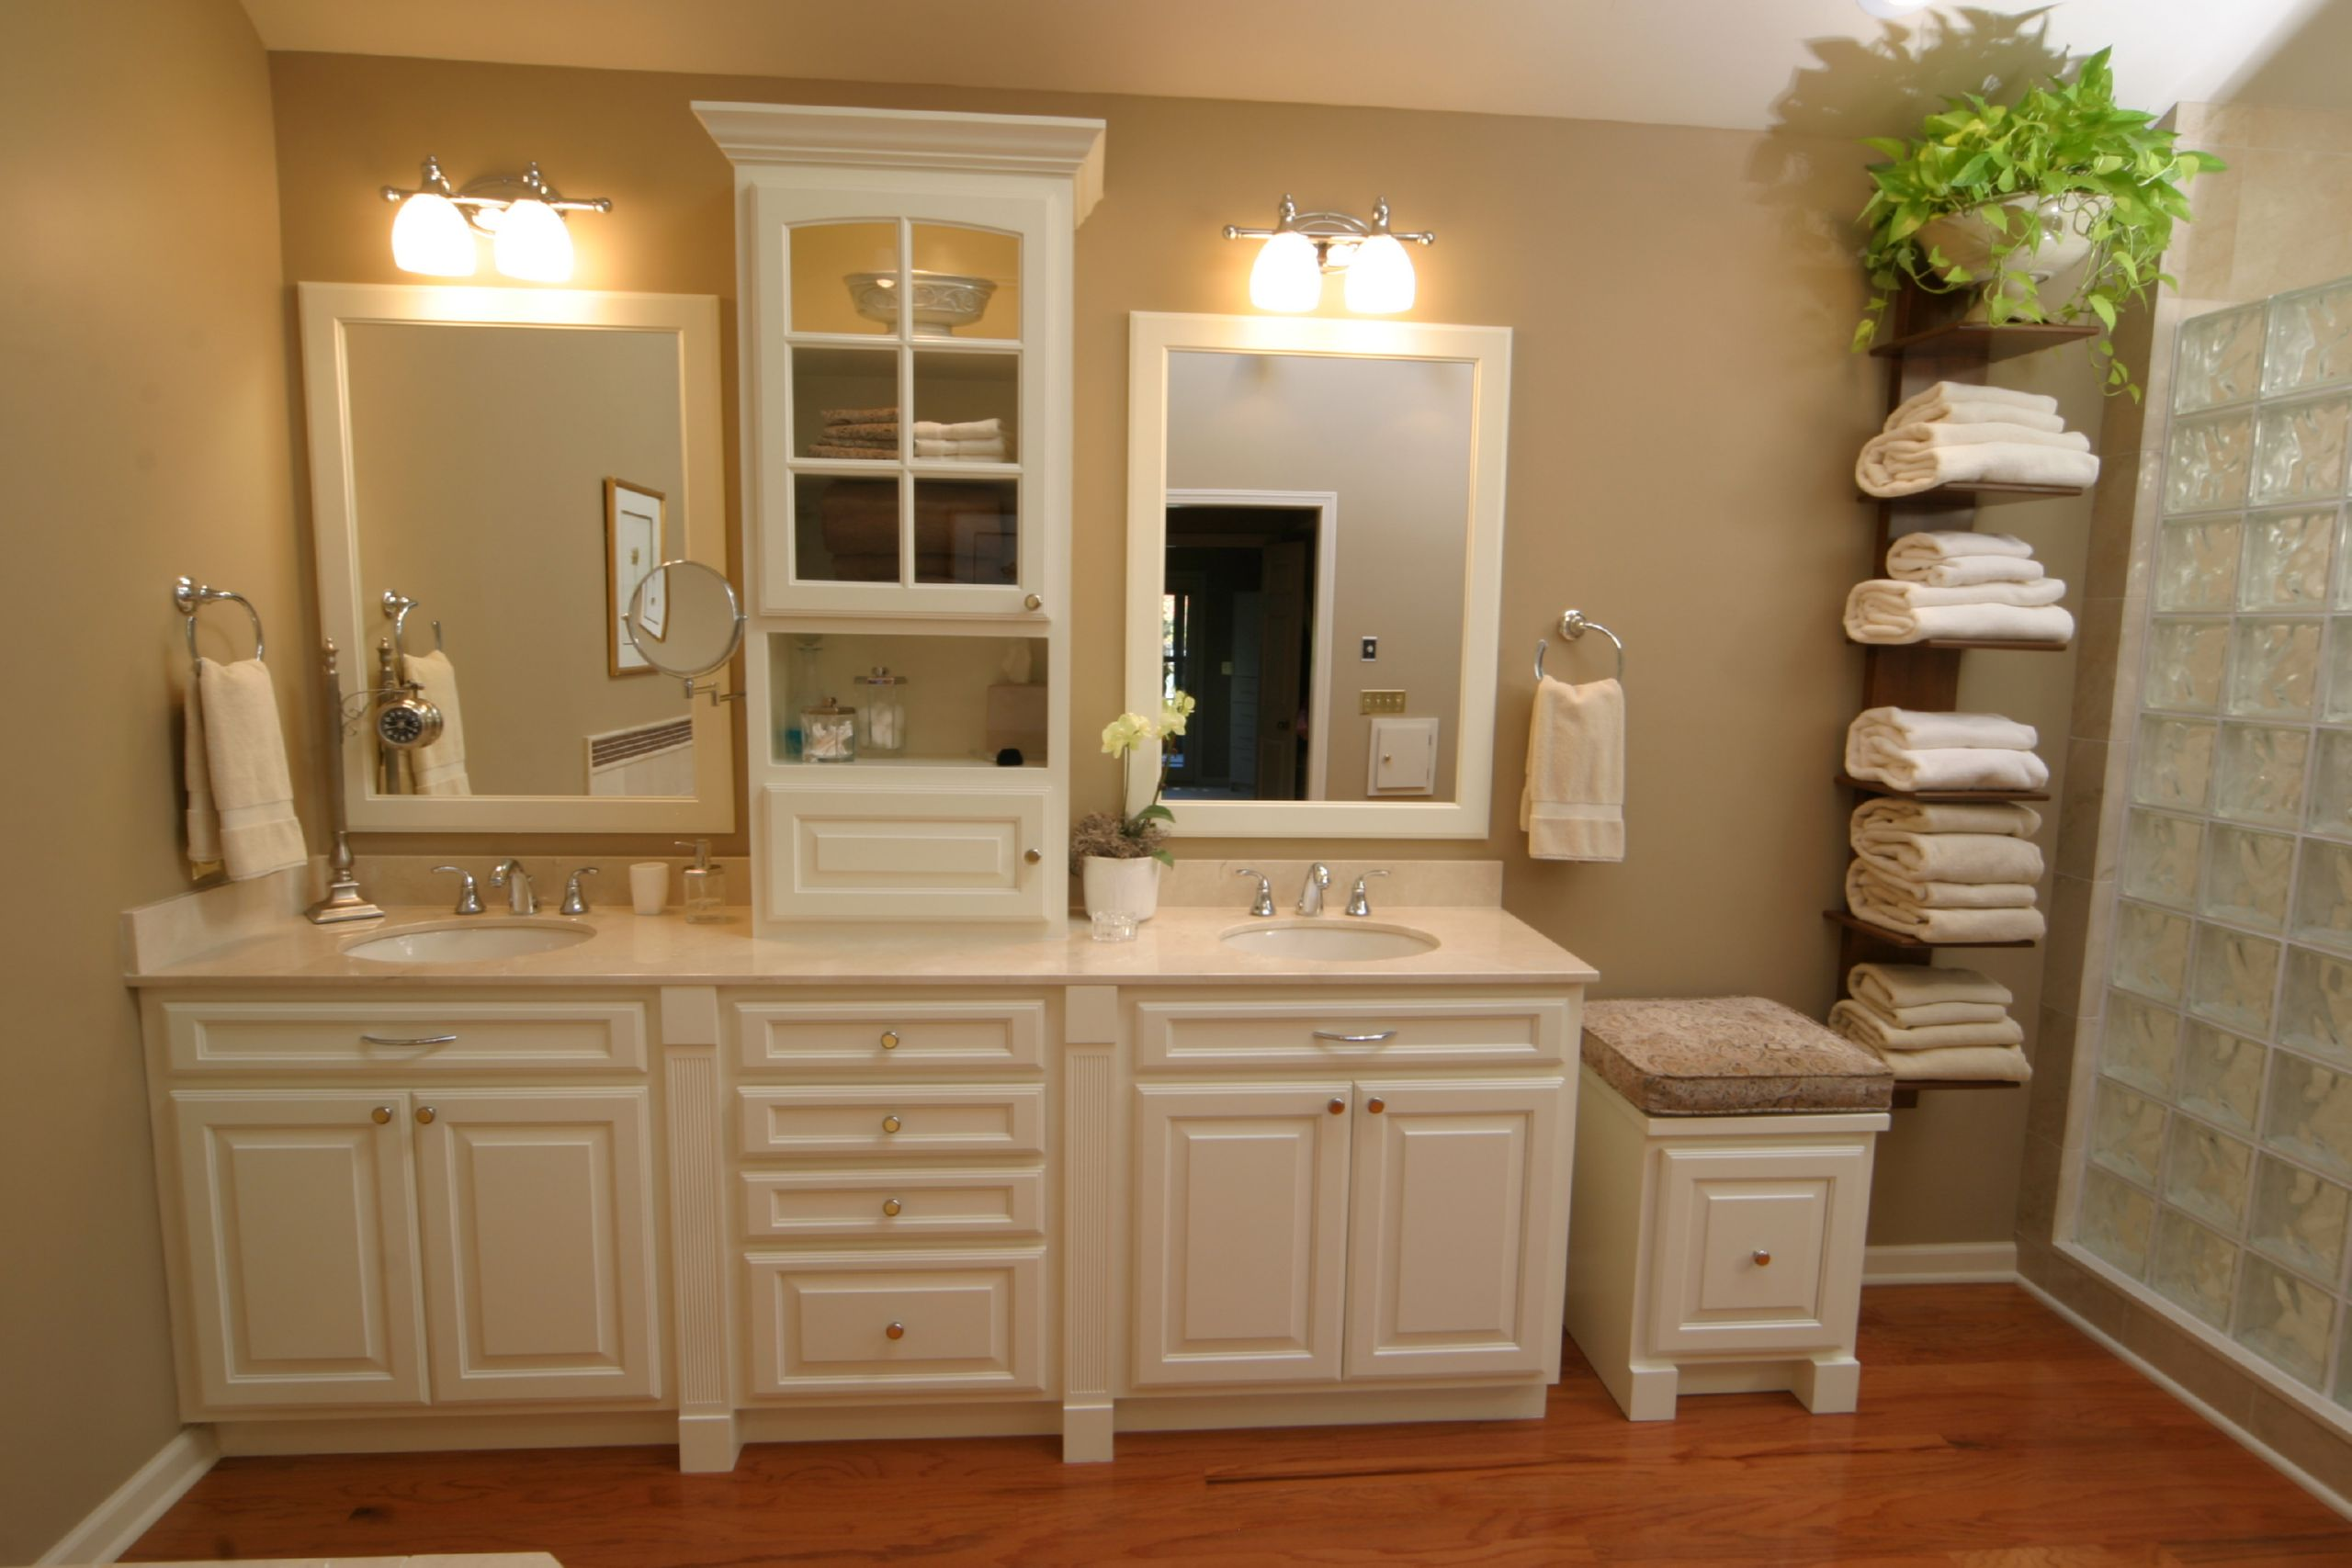 Bathroom remodeling tips njw construction for Great bathroom remodel ideas